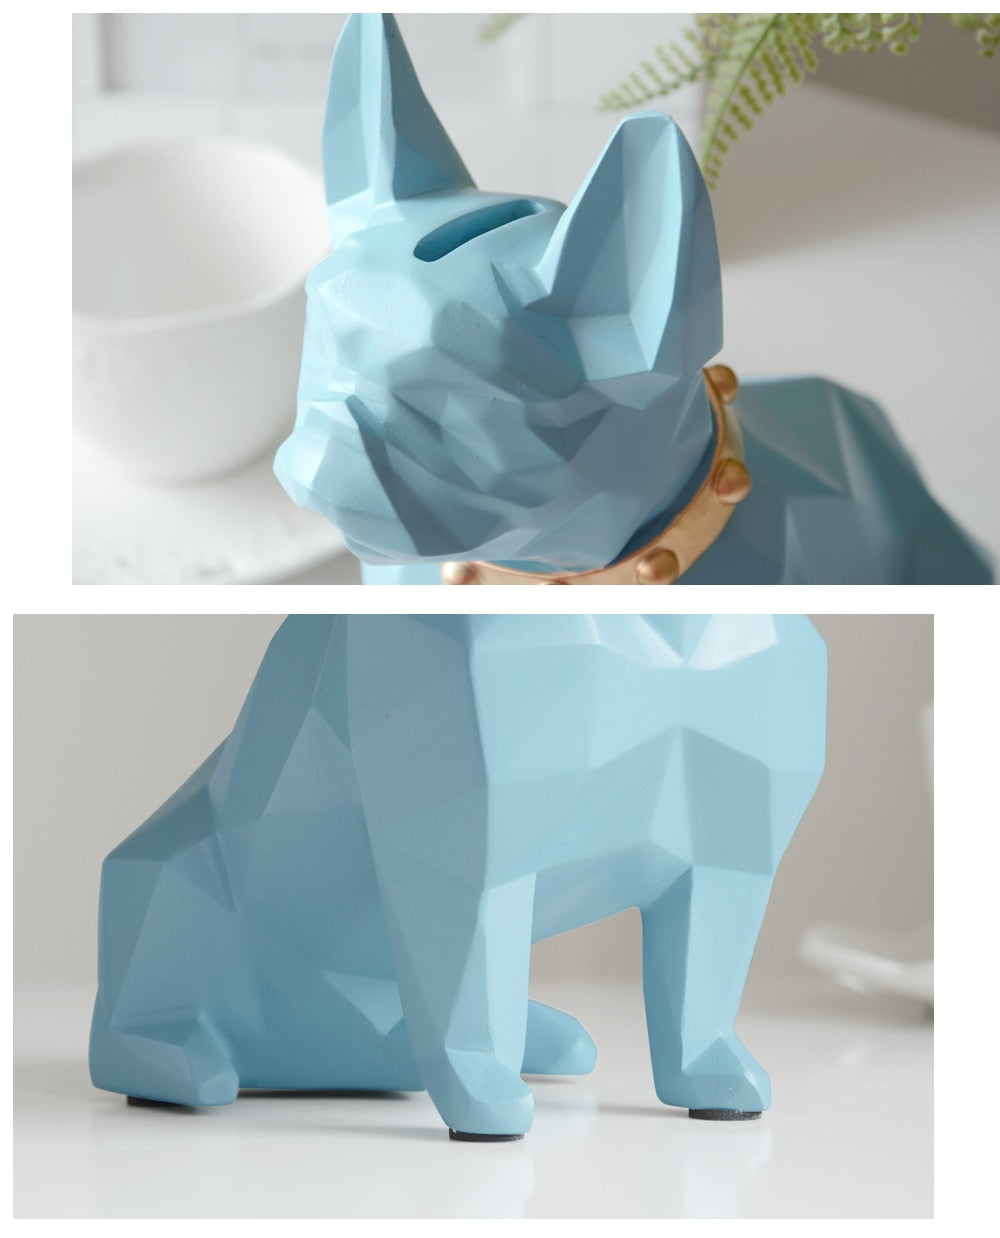 Home Decorations Cute Coin Bank Box Resin Dog Statue Home Decor Oran Nay,New Ganpati Decoration Ideas For Home